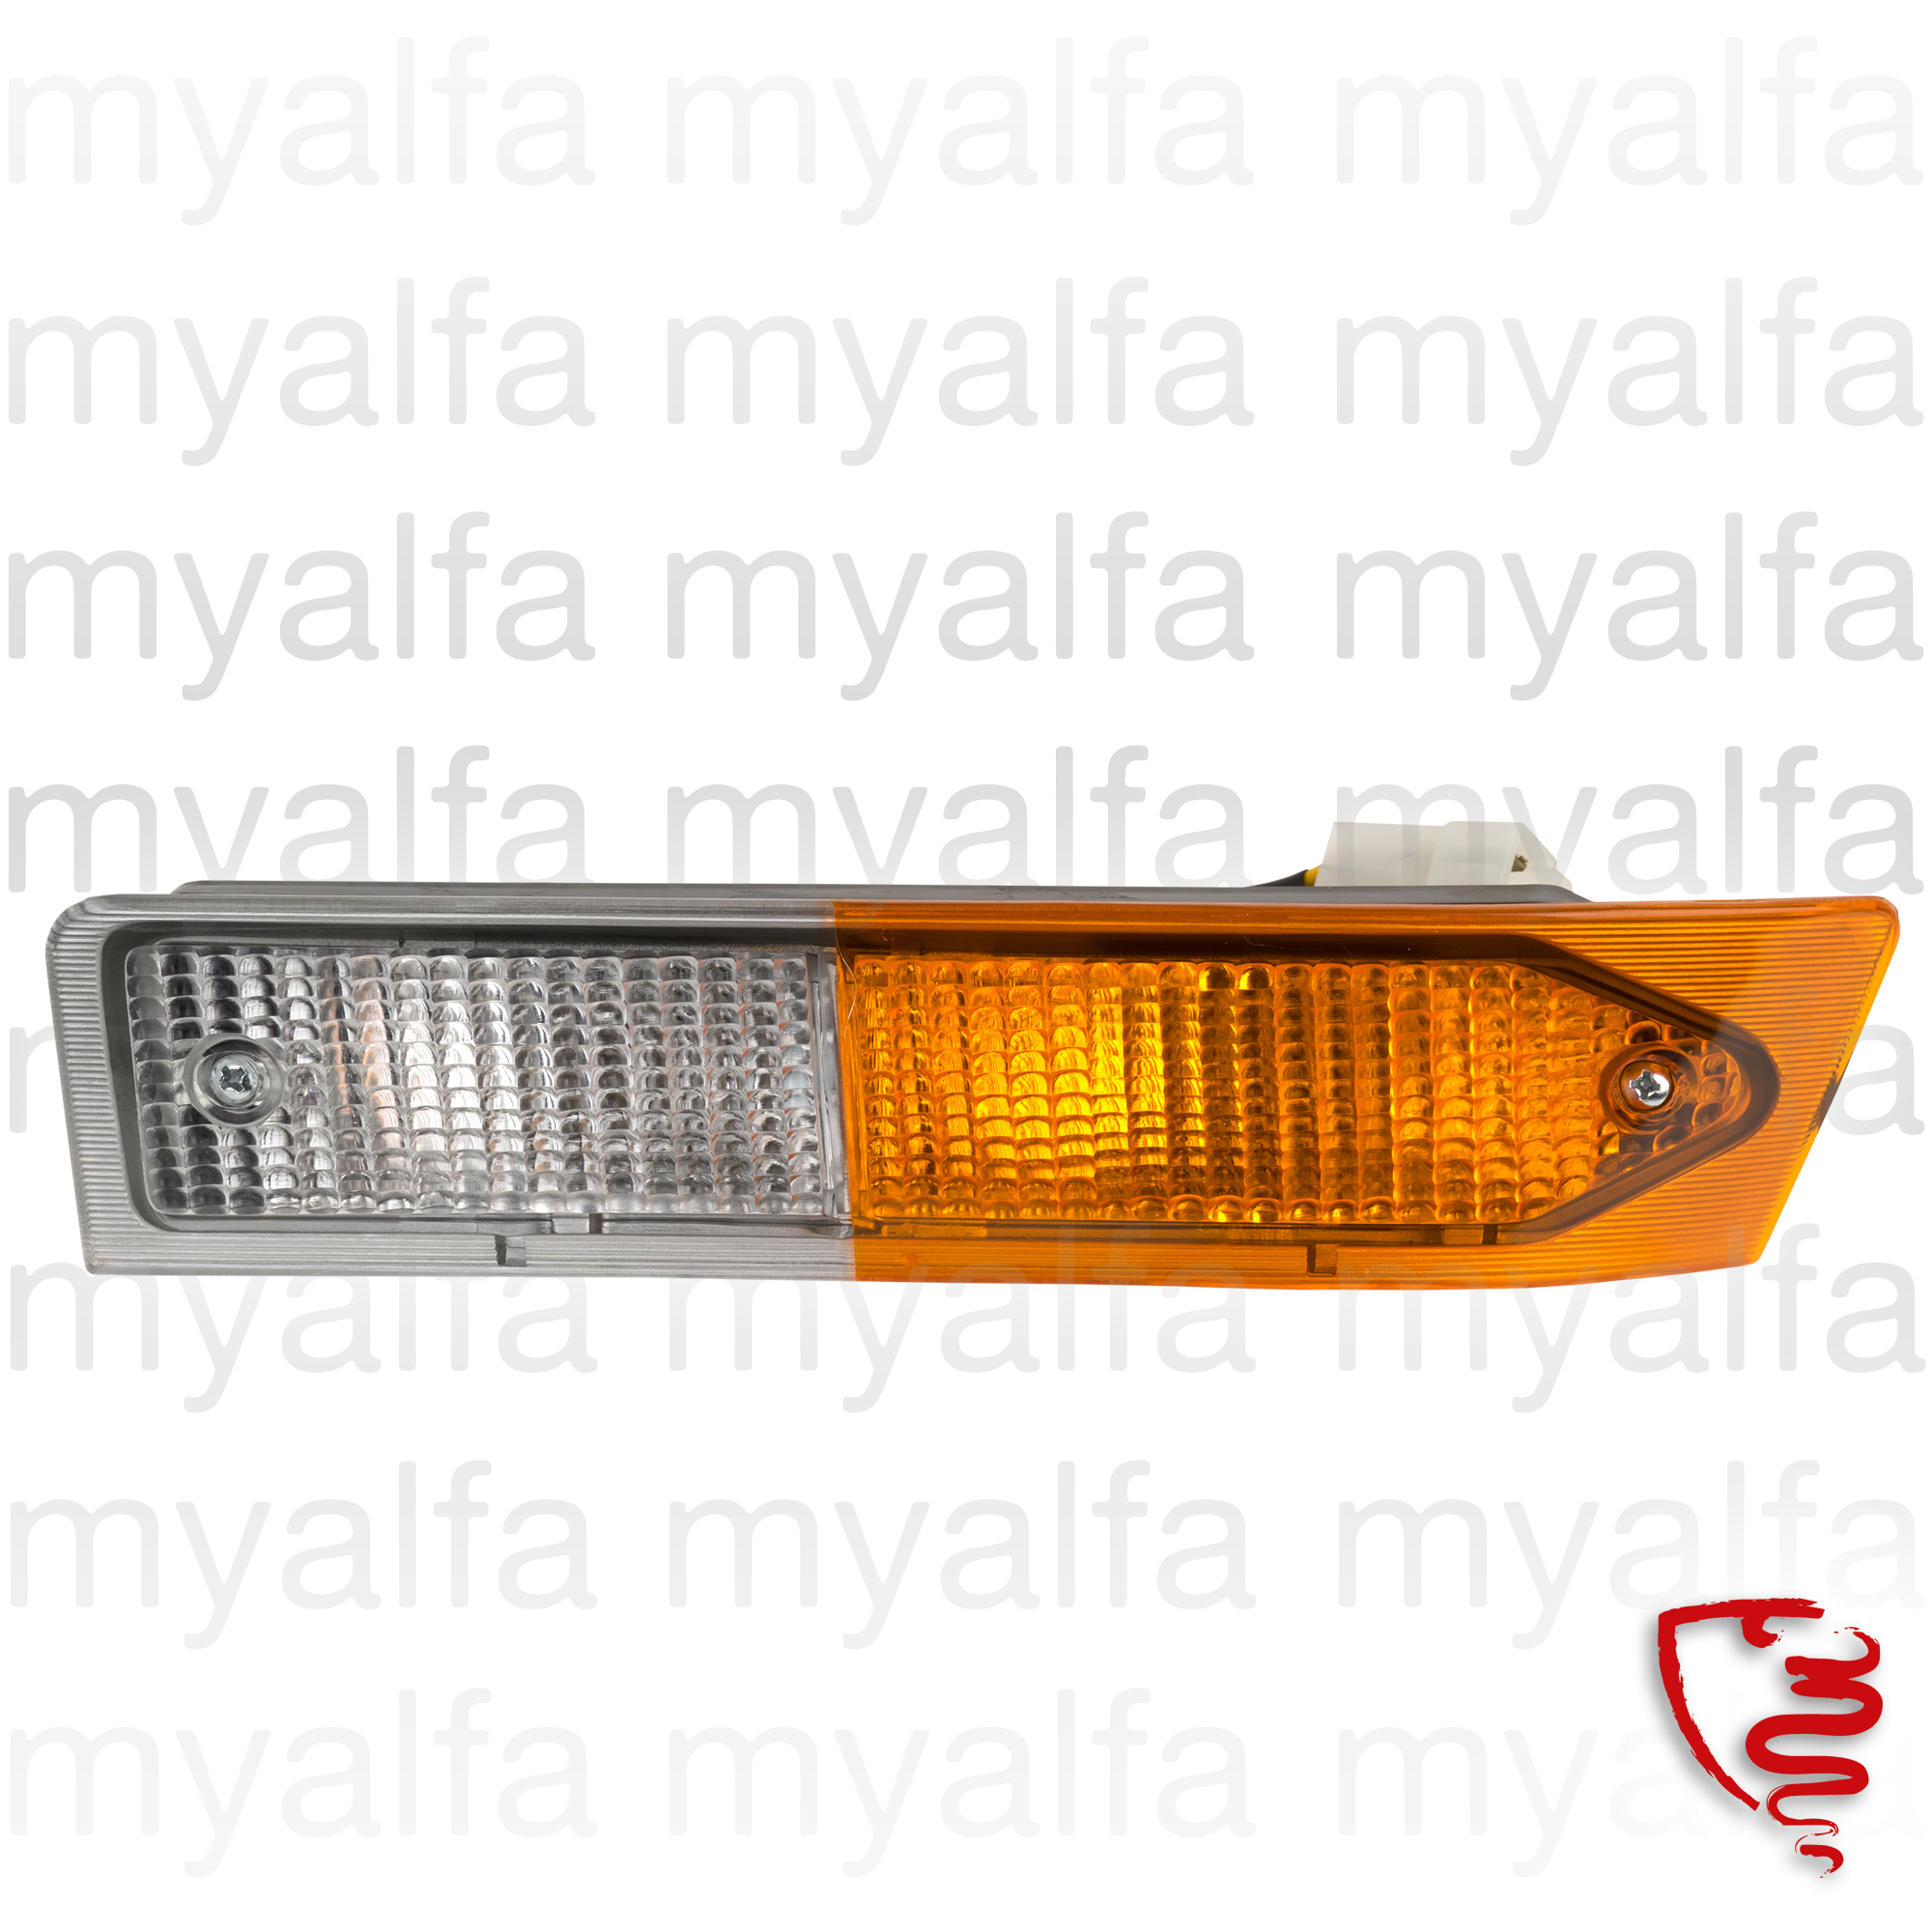 Beacon flashes and minimum frt. esq. Alfetta GTV 1st Series for 116/119, Body parts, Lighting, Indicators